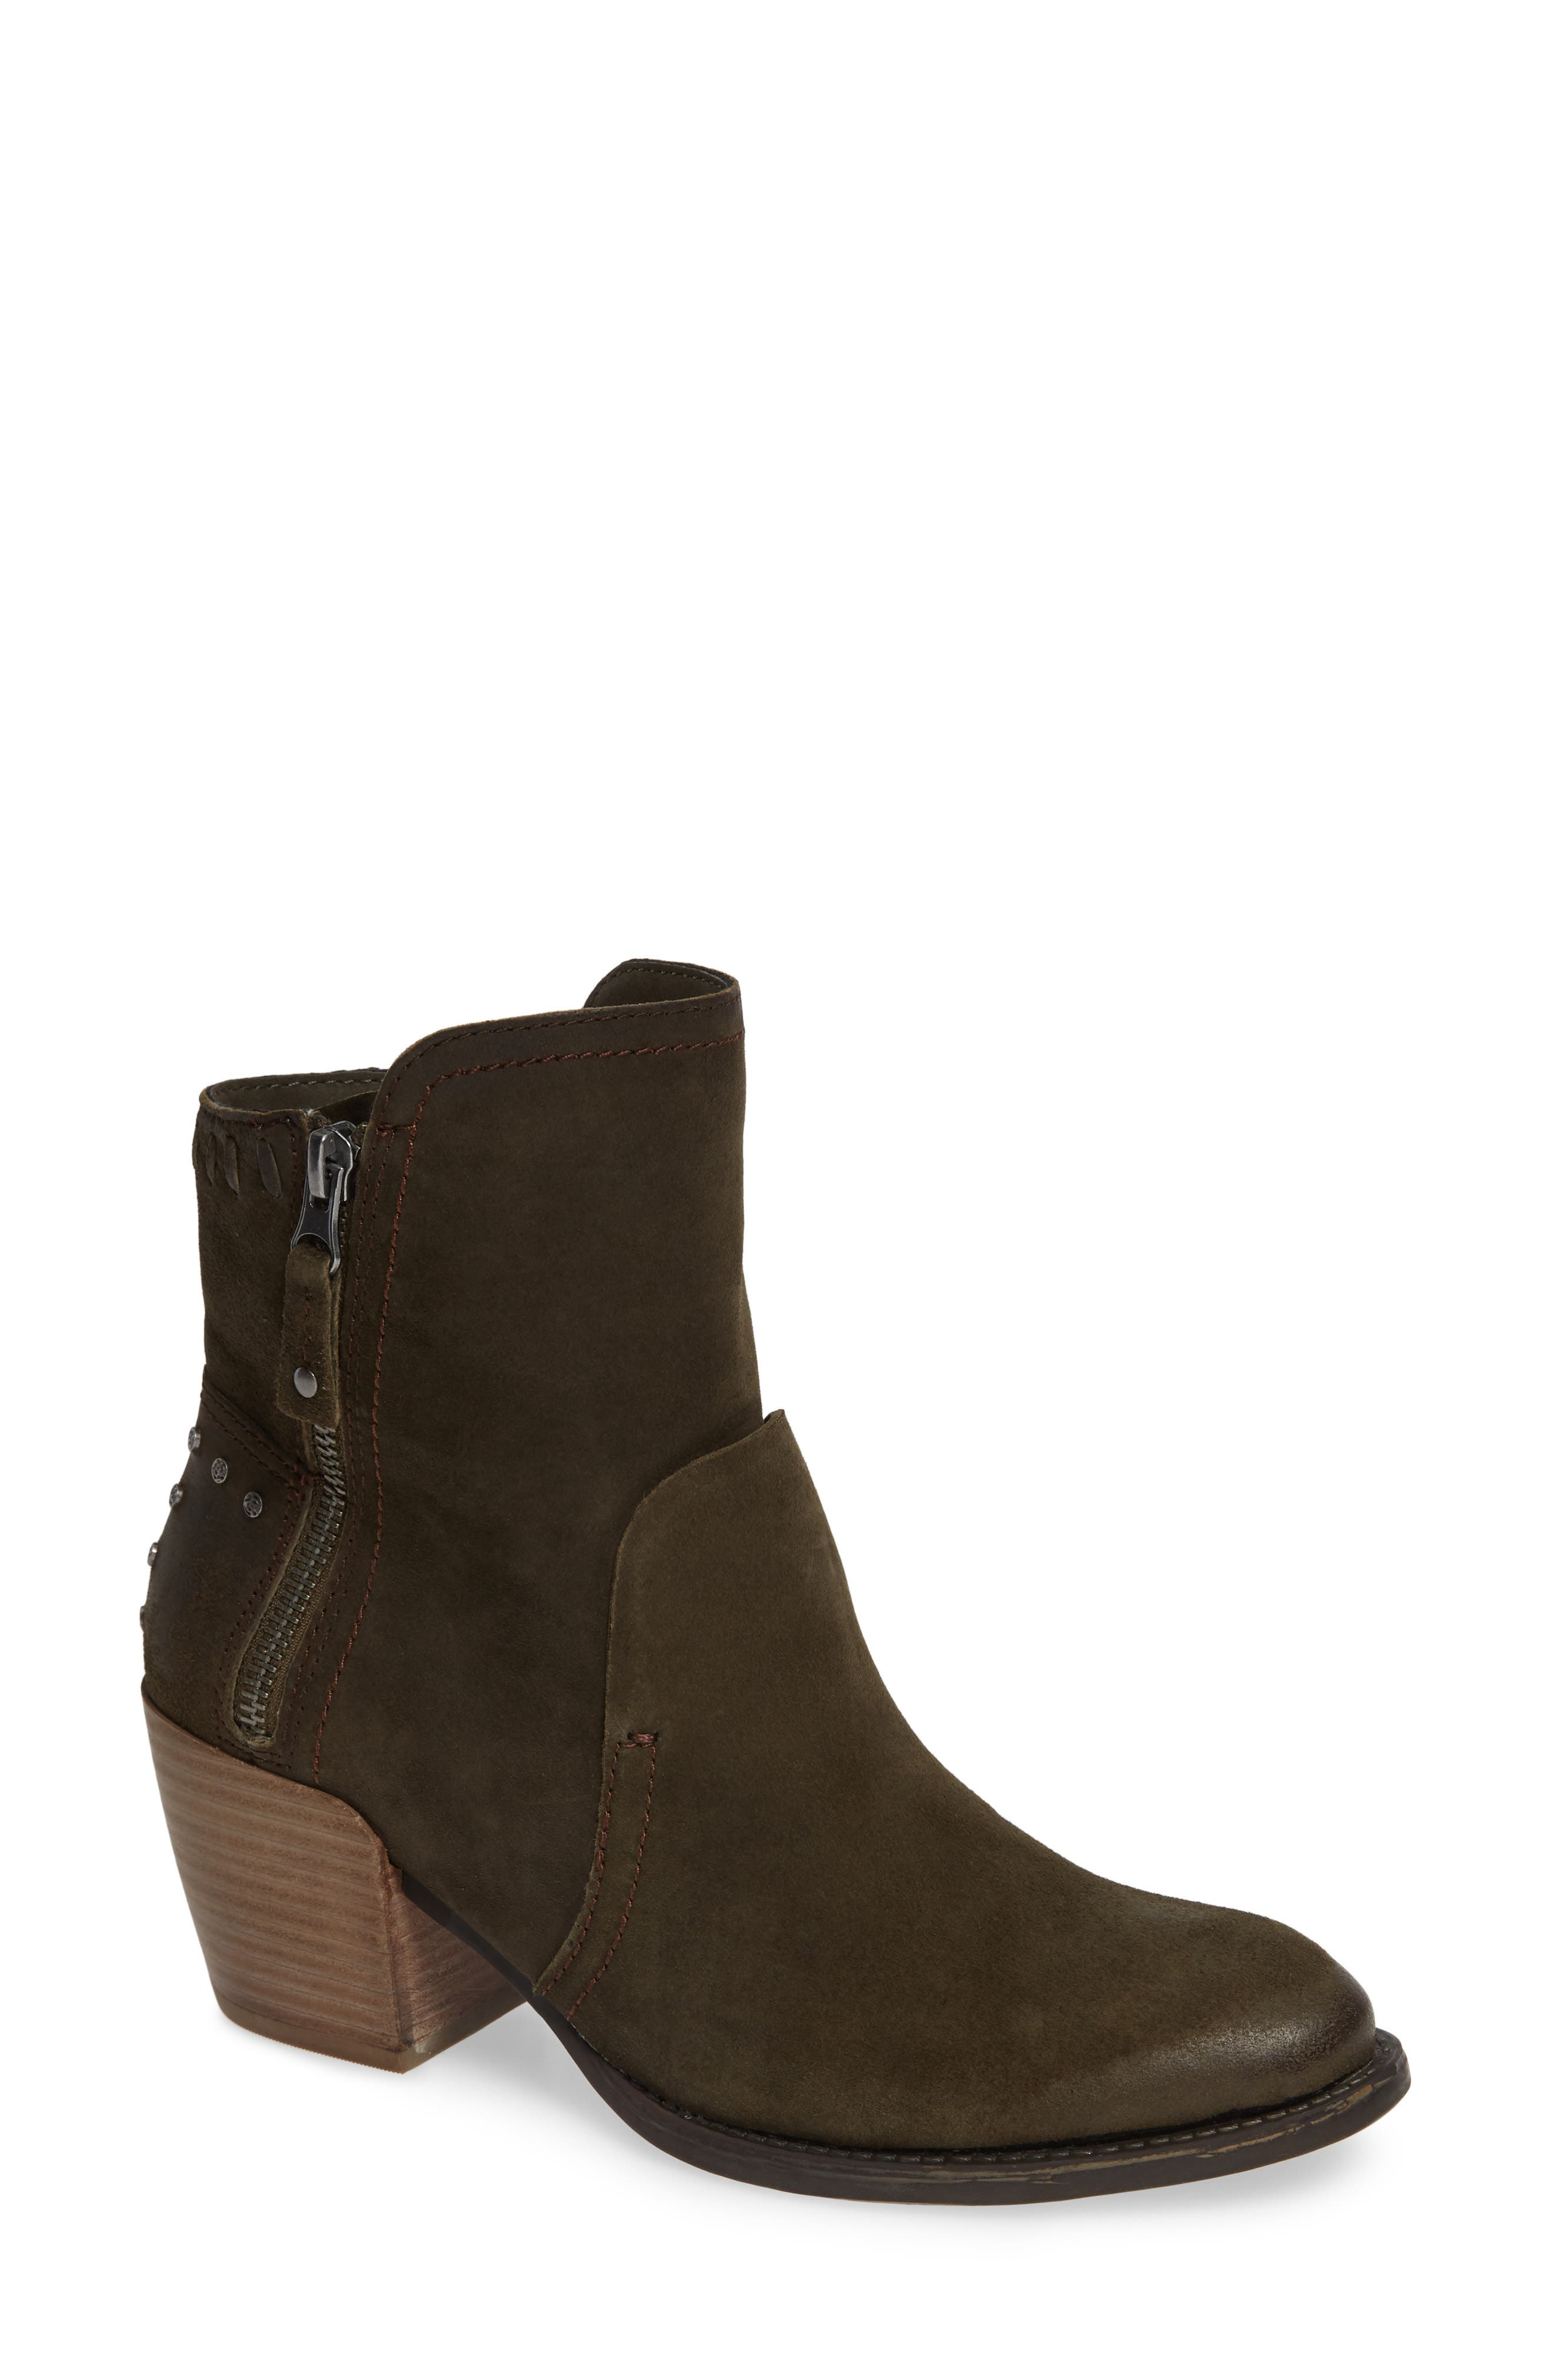 Otbt Red Eye Bootie, Grey